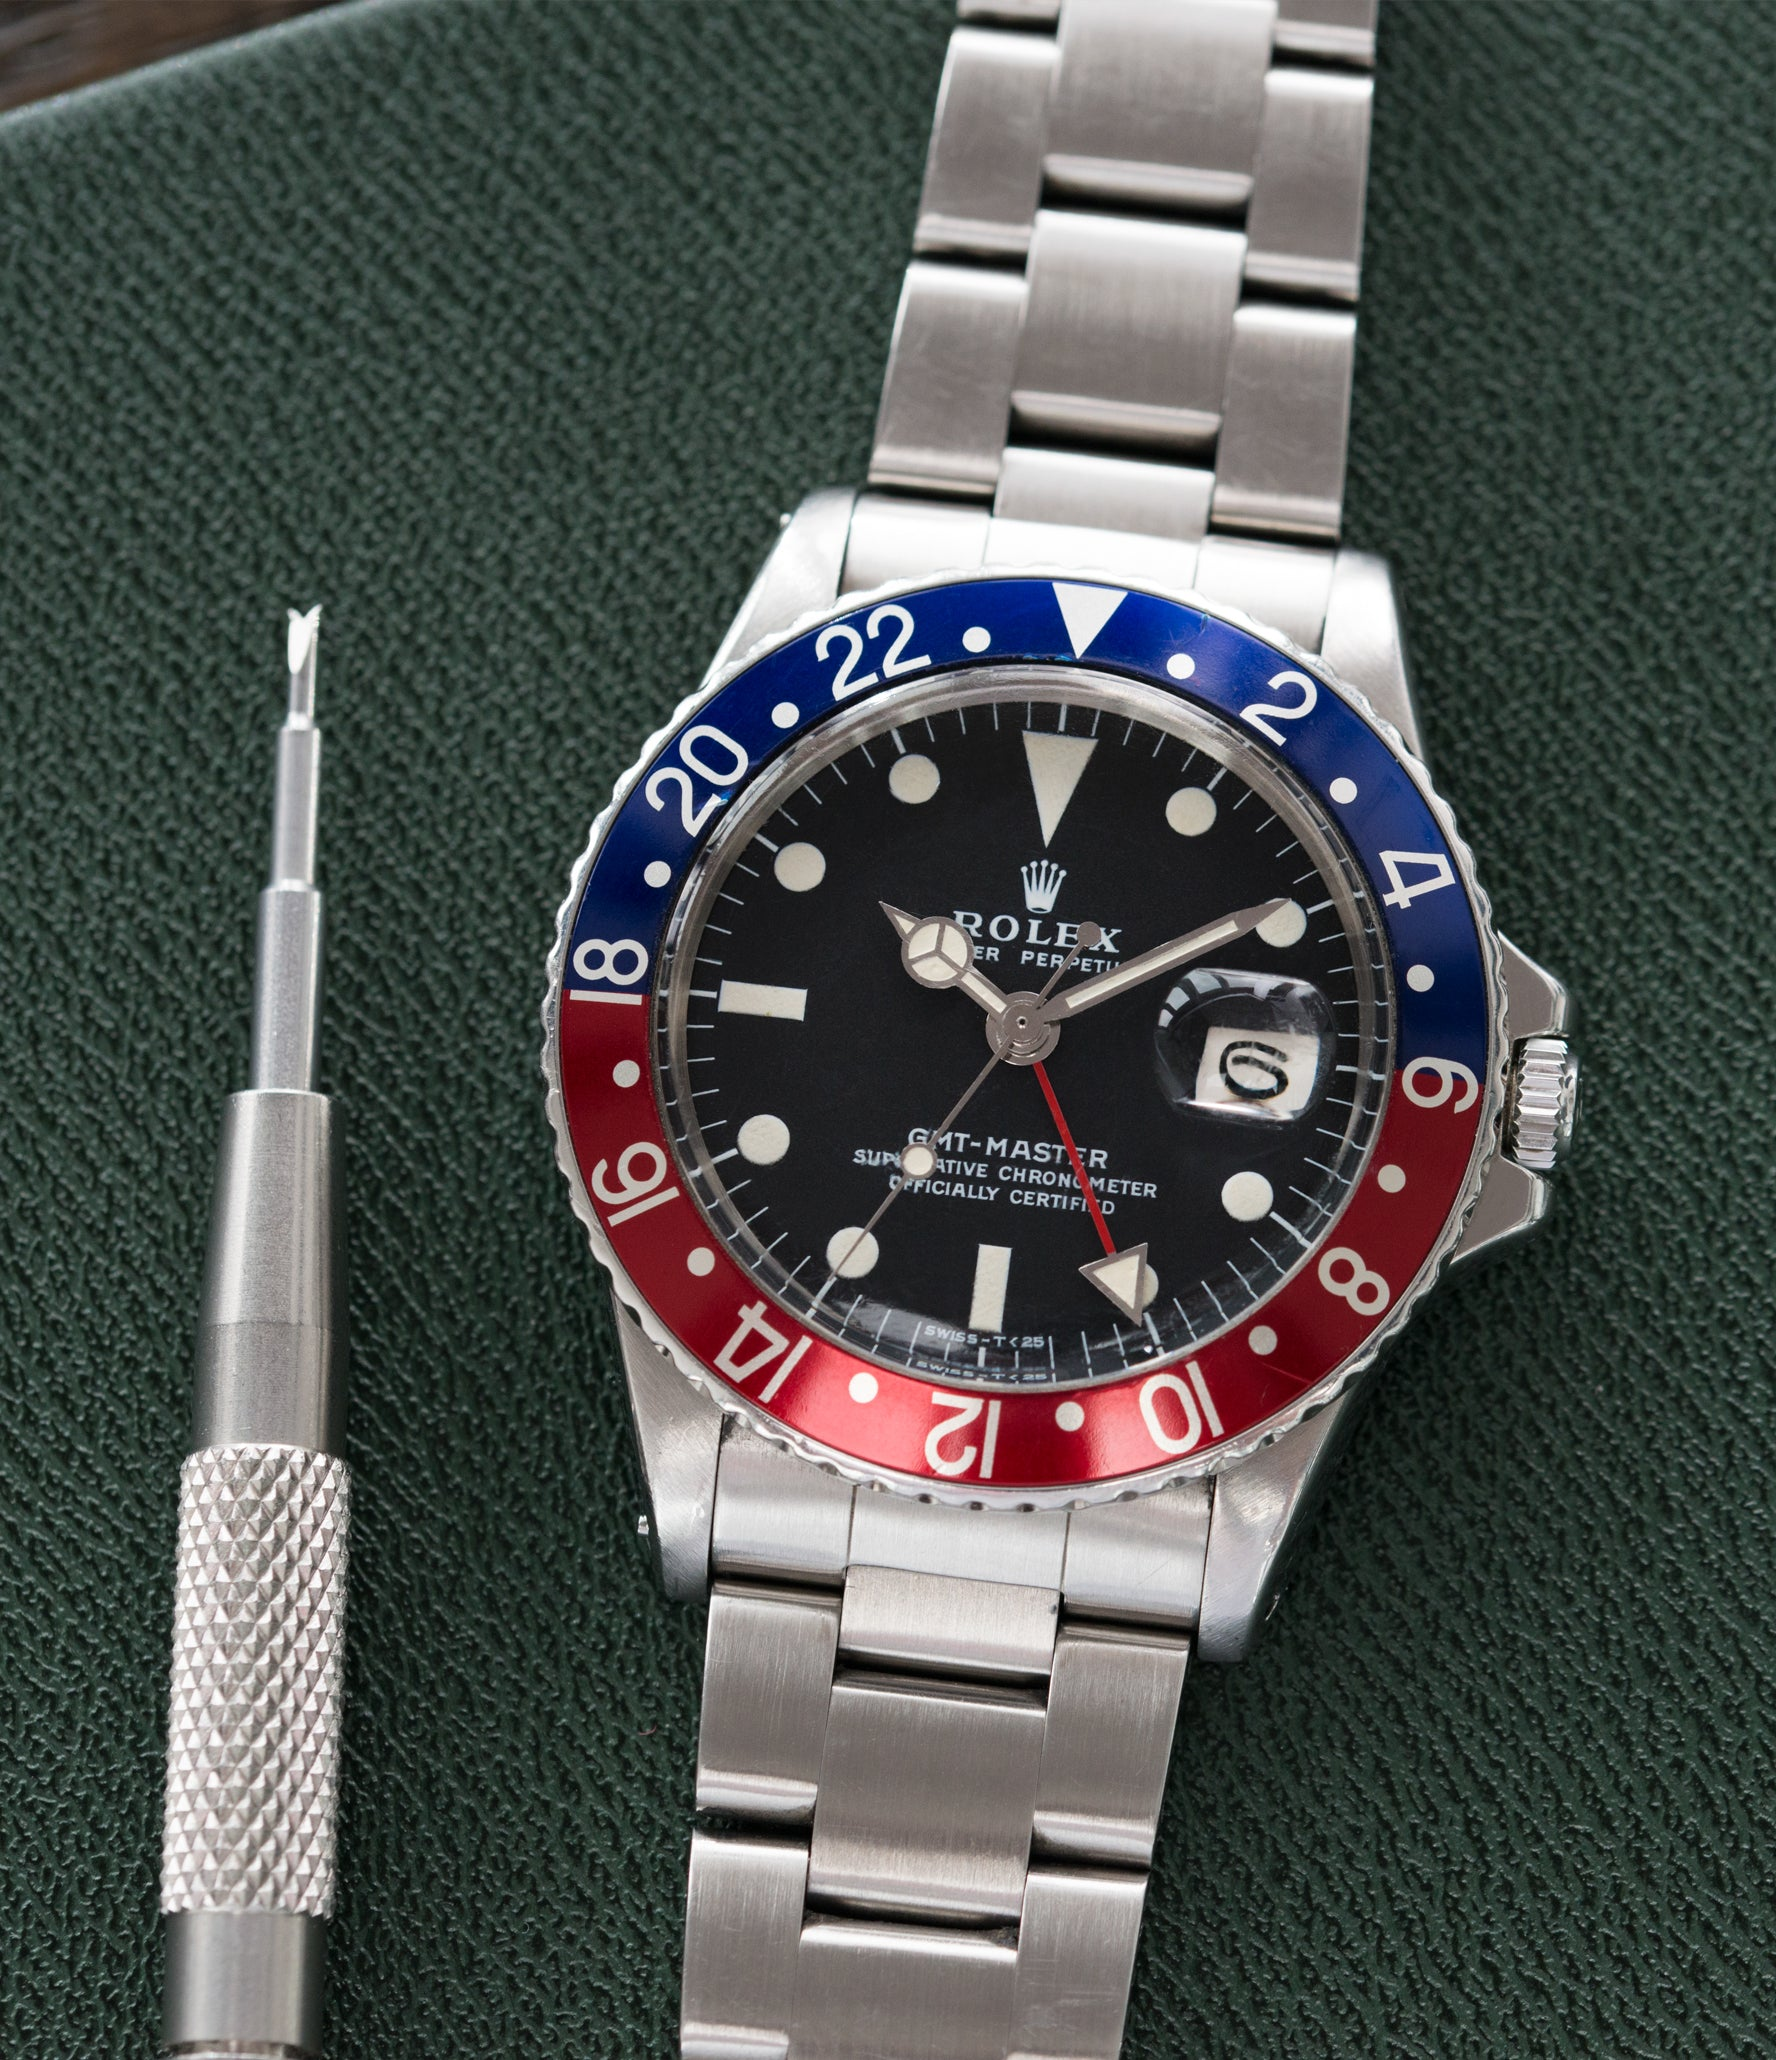 steel vintage Rolex GMT Master 1675 vintage steel traveller sport watch Pepsi bezel for sale online at A Collected Man London vintage watch specialist